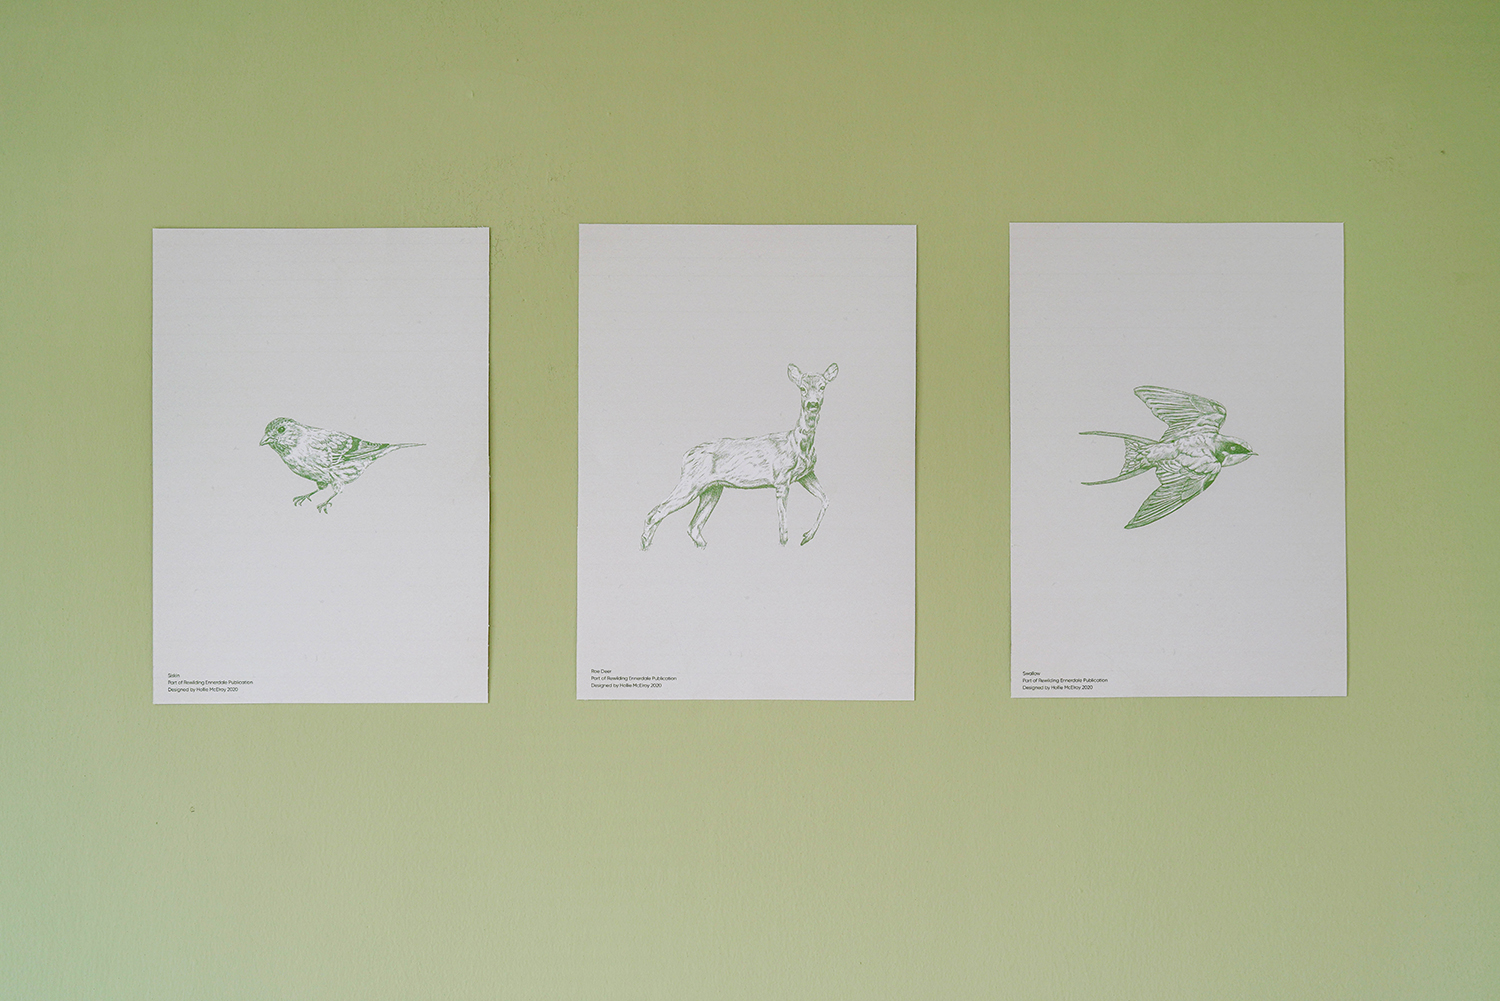 Illustrations of a tow different birds and a stag on a green background